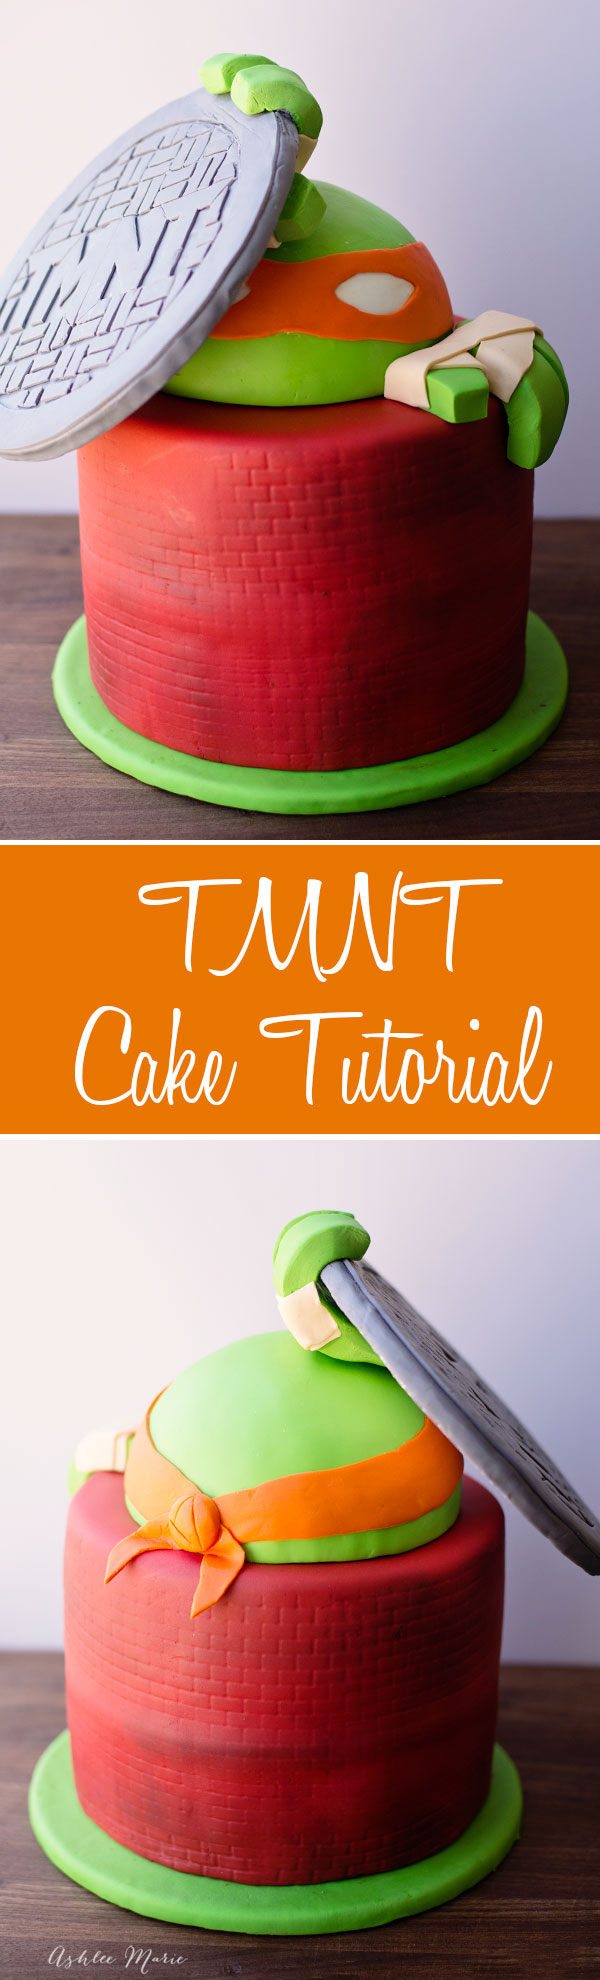 A full video tutorial for this Teenage Mutant Ninja Turtle Cake including the fondant manhole cover